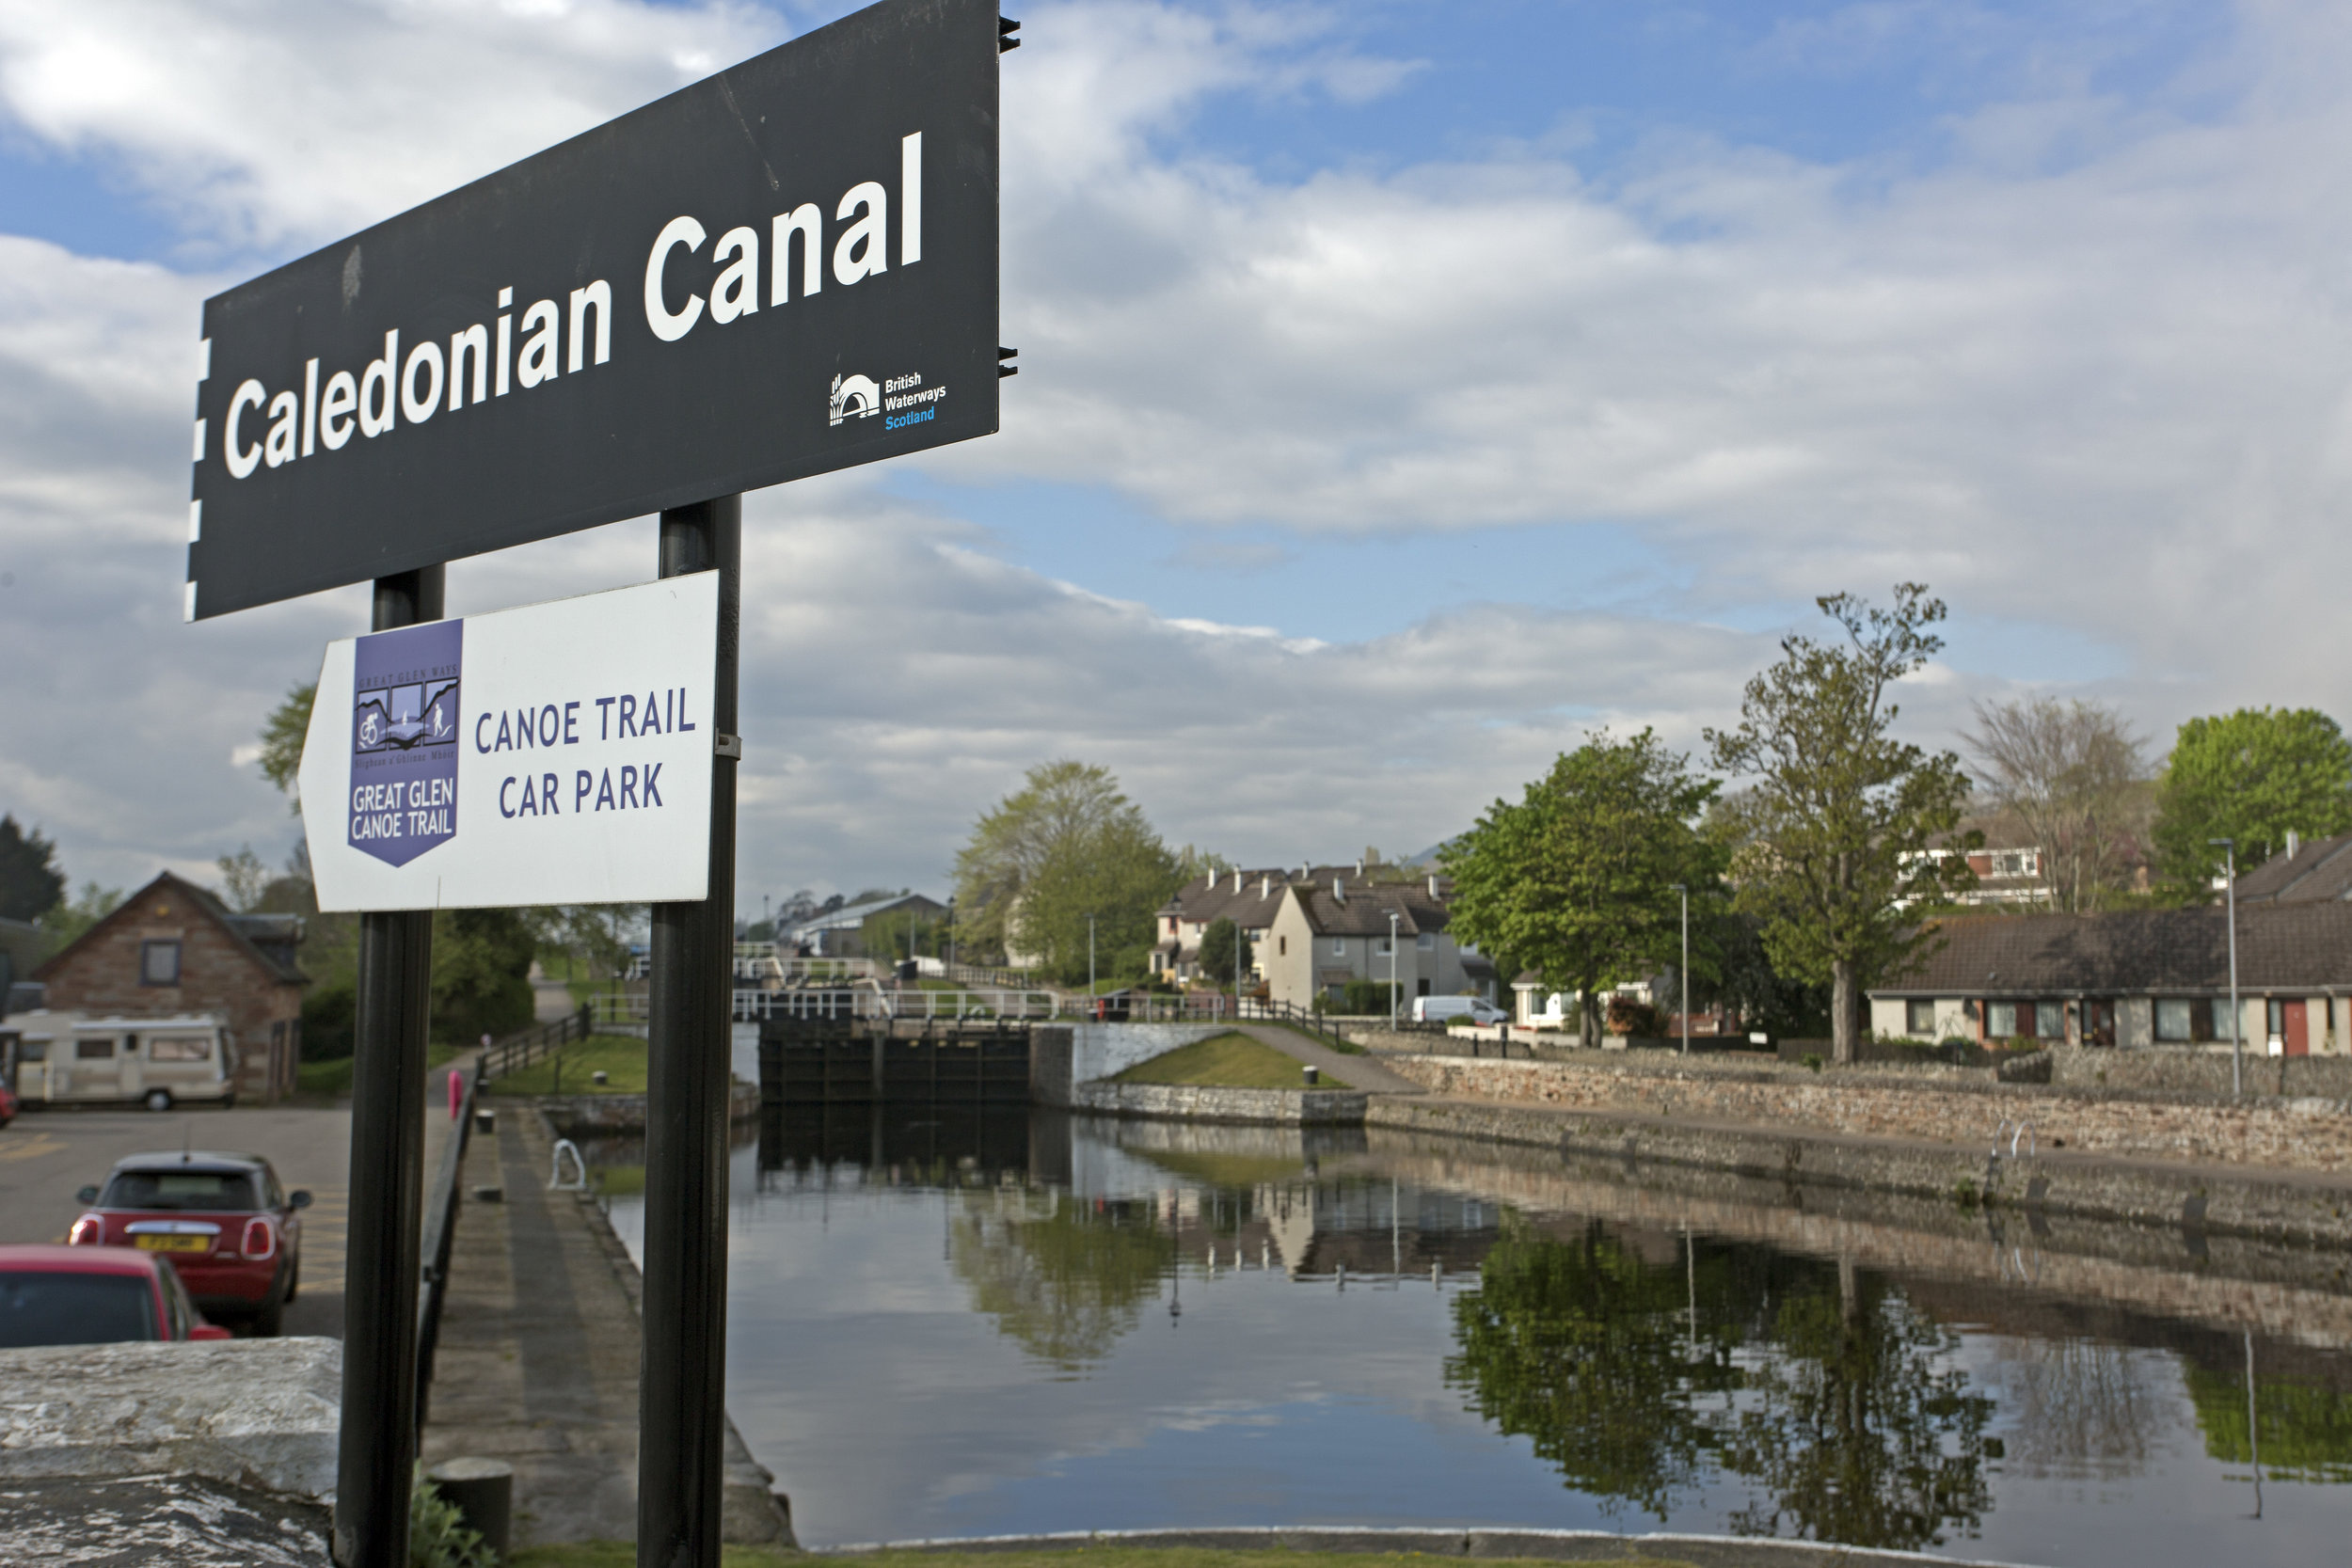 The very start of the Caledonian Canal, from Inverness to Fort William. We will pick up our rental canal boat tomorrow and begin our journey.